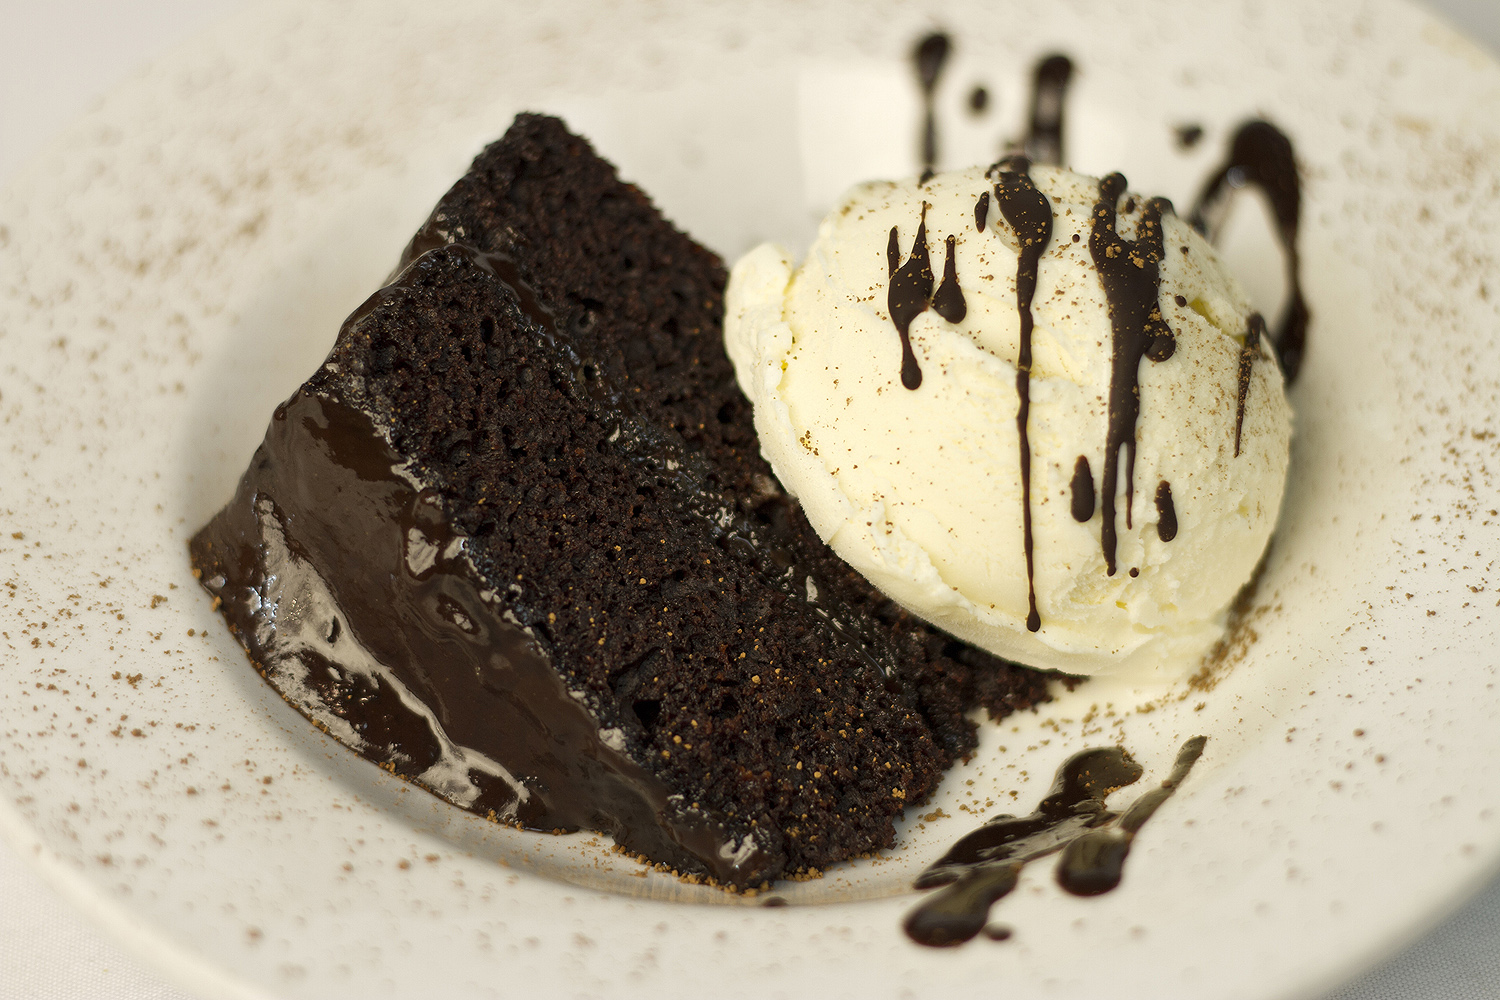 chocolate cake and ice cream restaurant photo 1000x